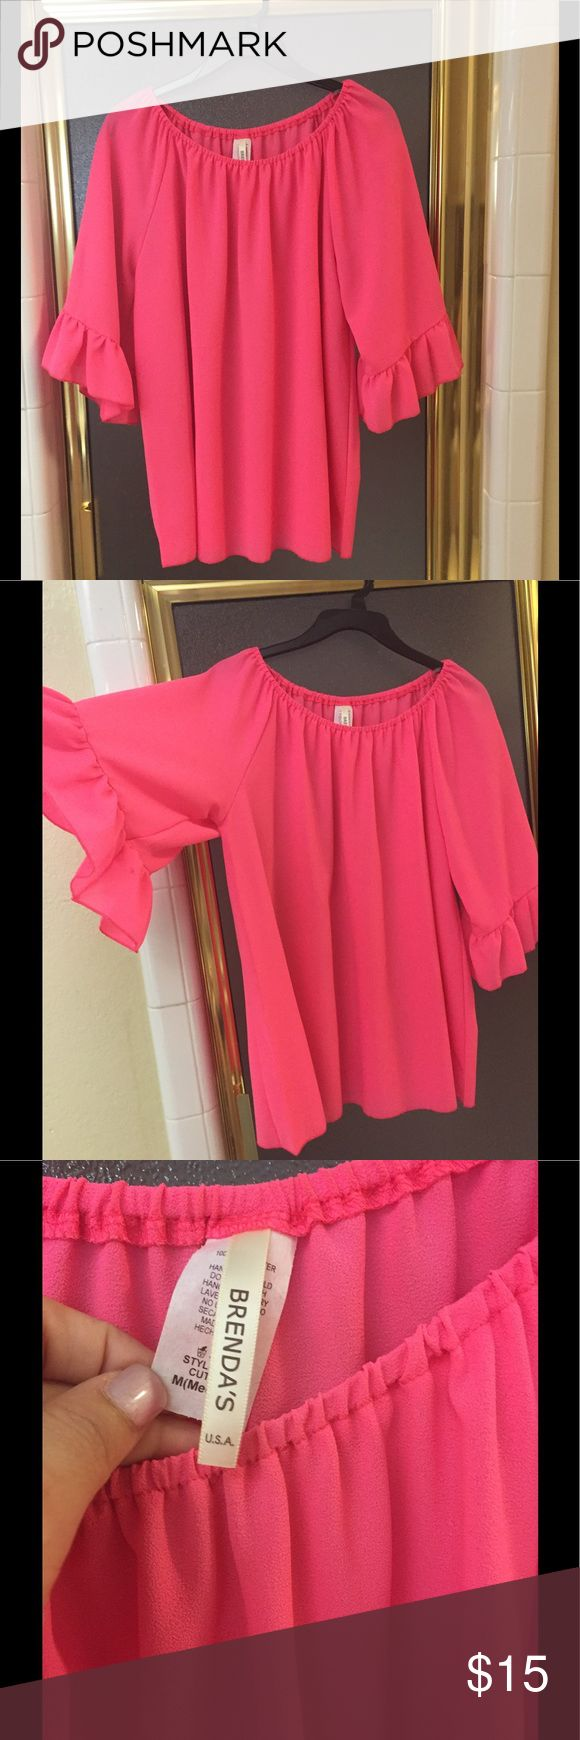 Hot pink blouse Used only once. In excellent condition. Great for summer. Brenda Tops Blouses